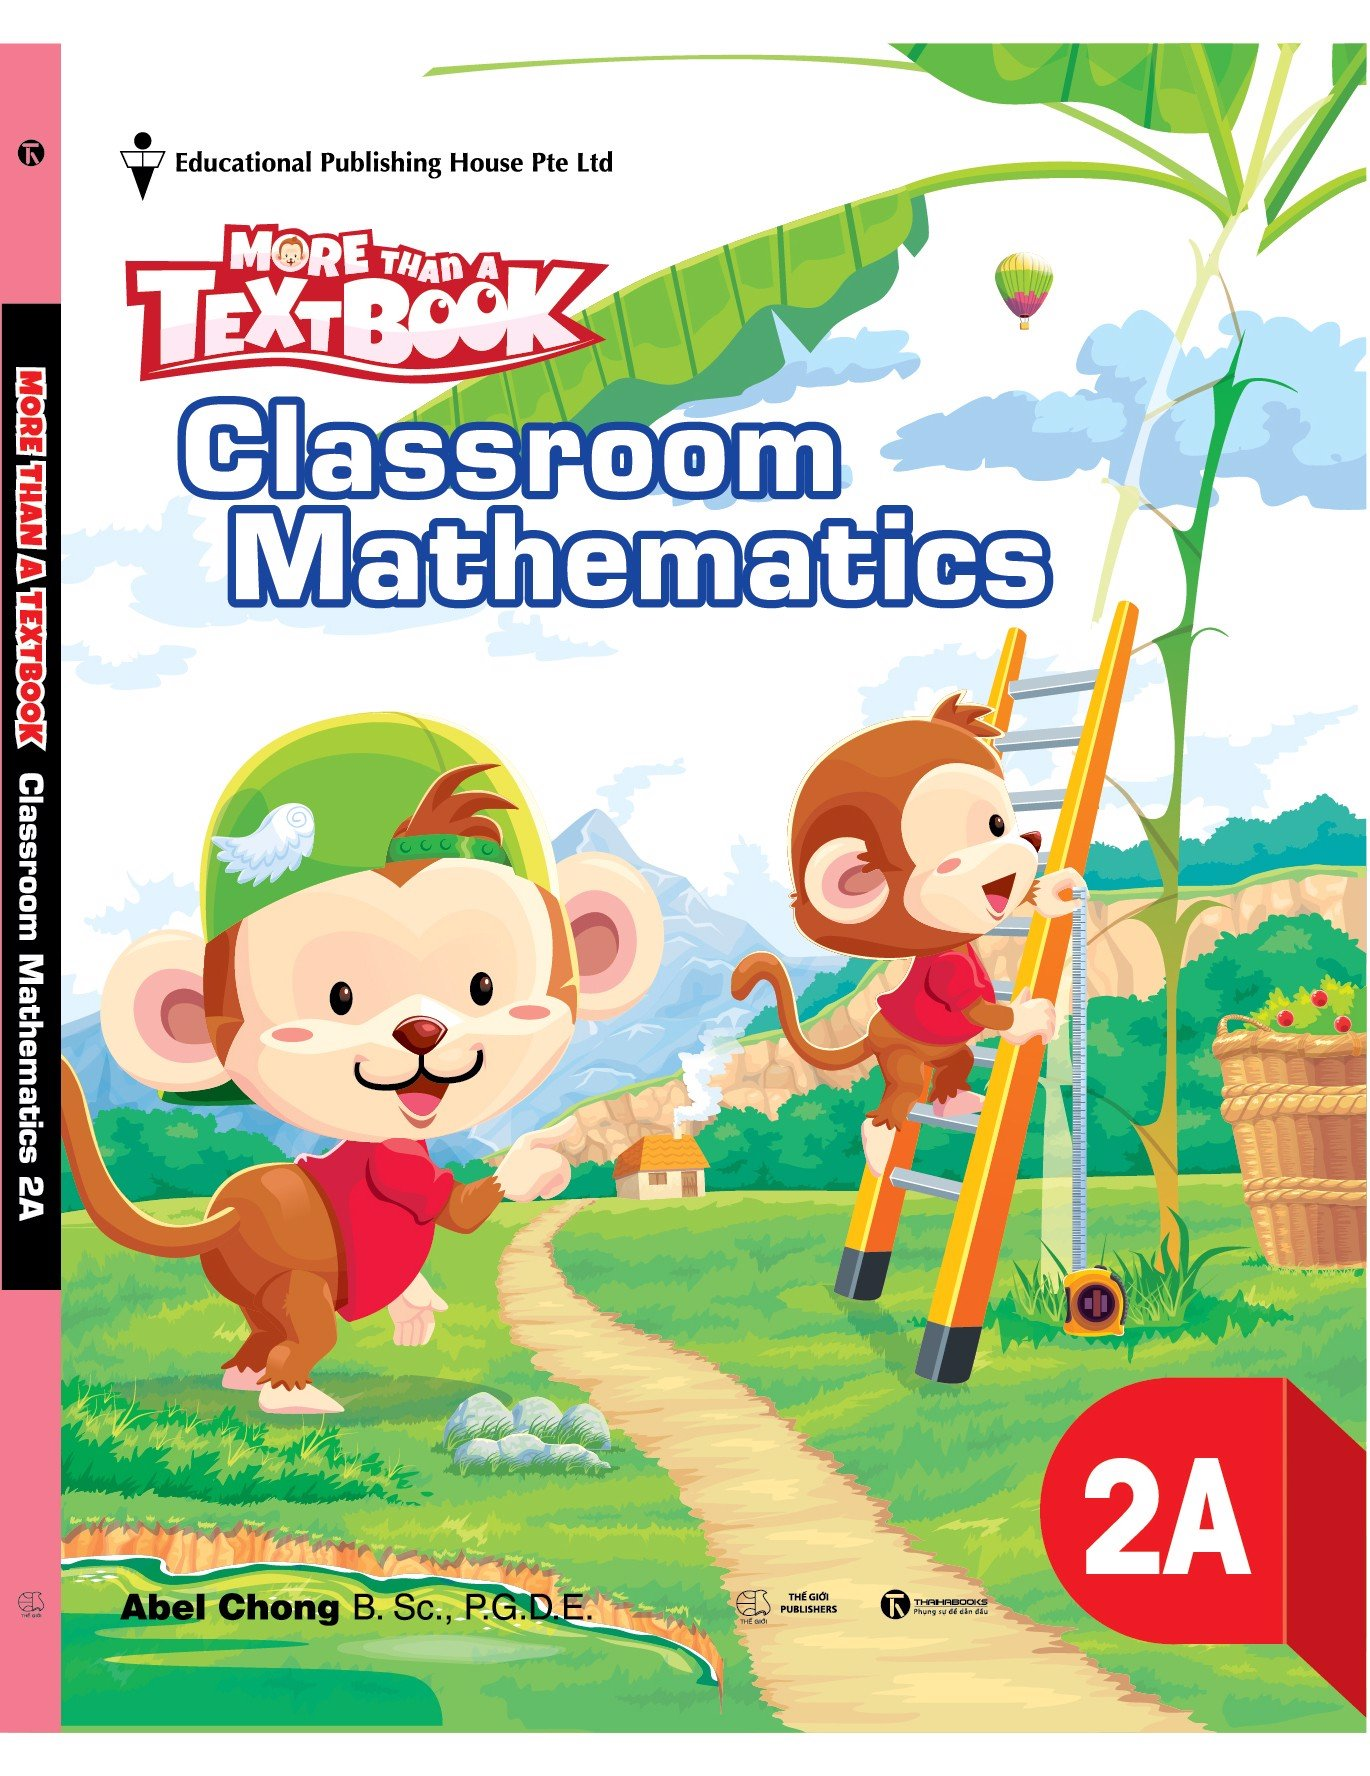 P2A More than a Textbook – Classroom Mathematics